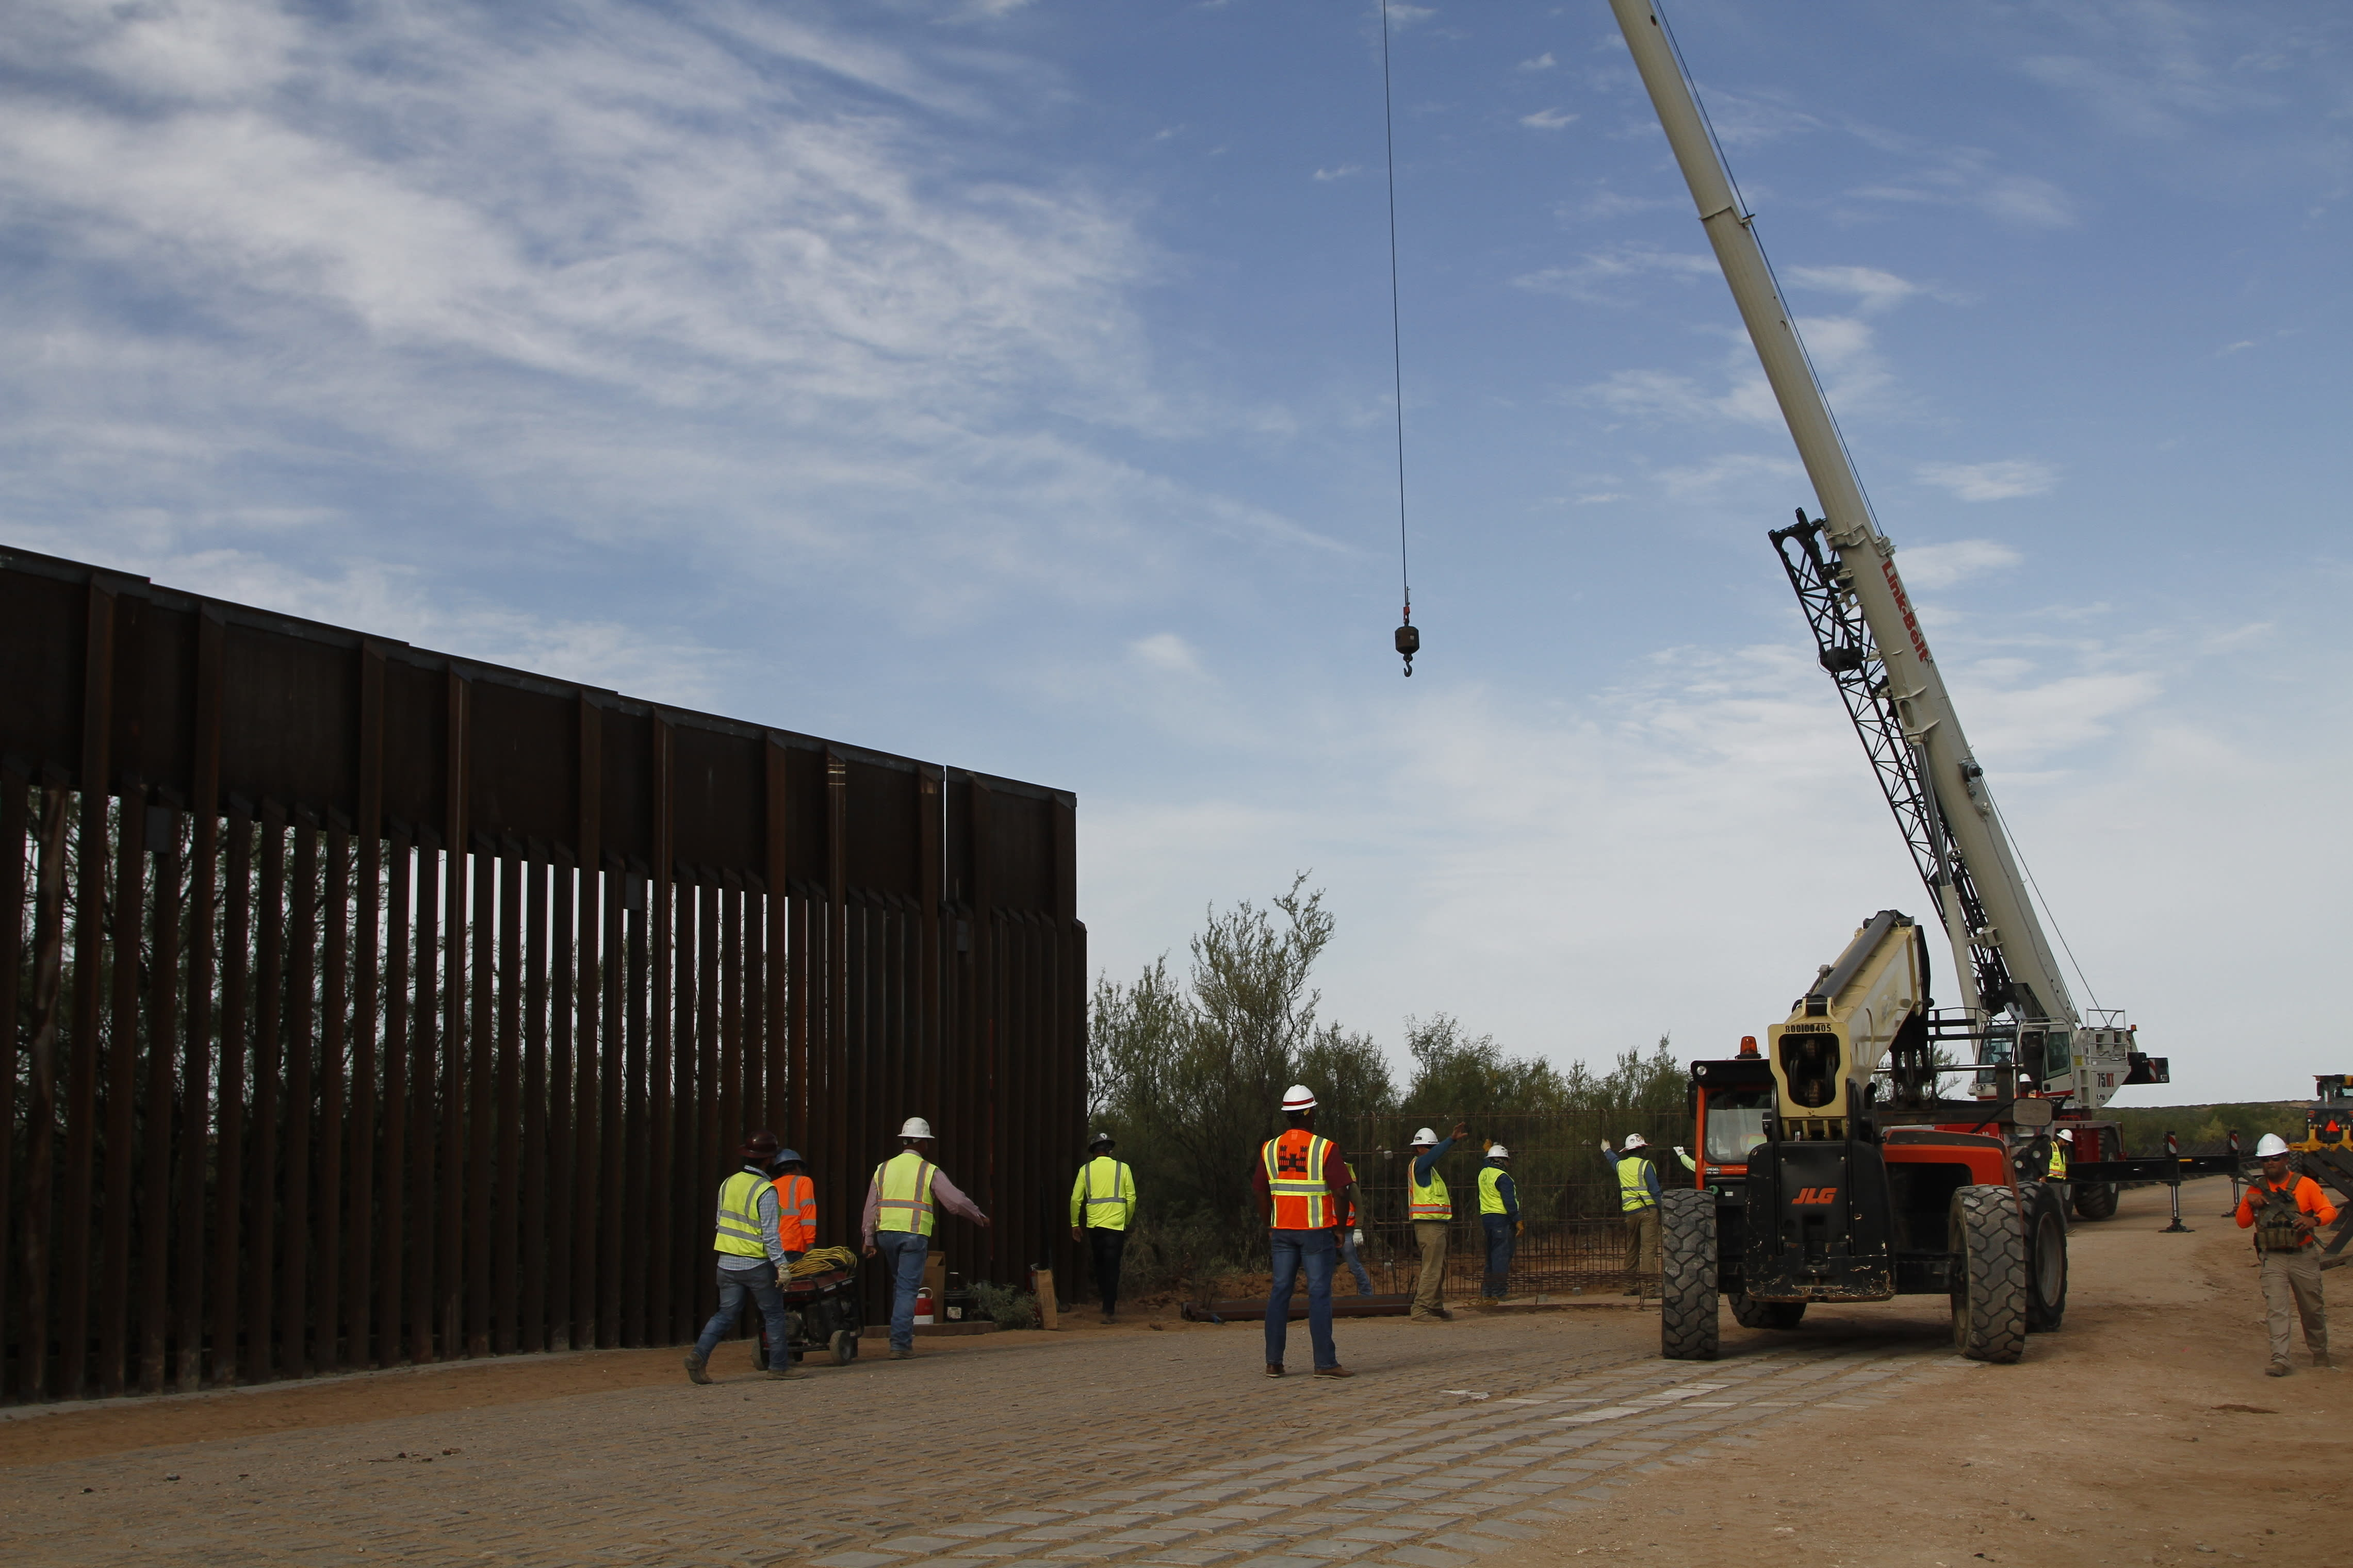 Workers break ground on new border wall construction about 20 miles west of Santa Teresa, New Mexico, Aug. 23, 2019. The wall visible on the left was built in 2018 with money allocated by Congress, while the new construction is funded by money reallocated from Department of Defense funding. (AP Photo/Cedar Attanasio)